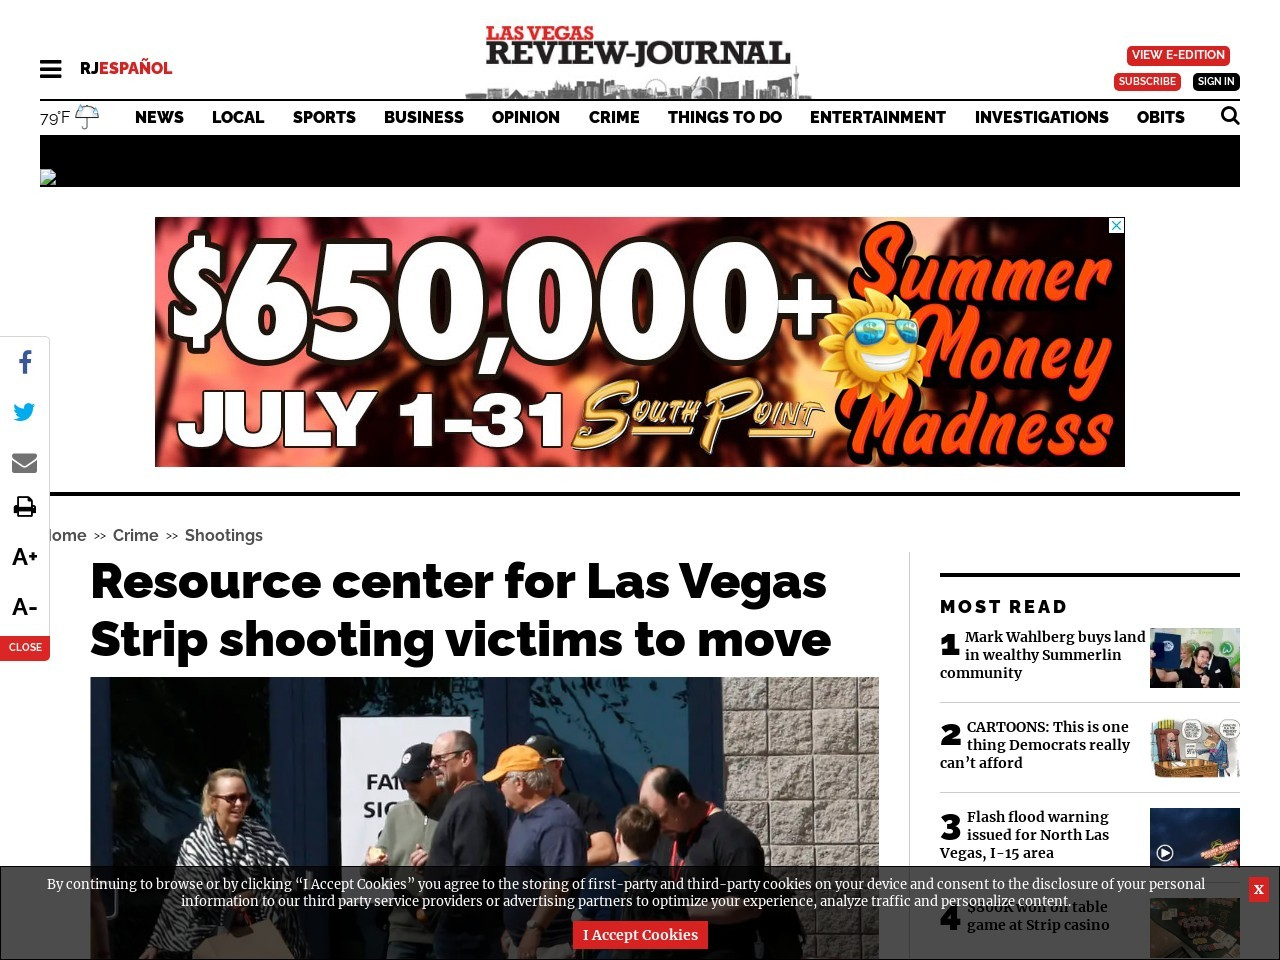 Resource center for Las Vegas Strip shooting victims to move